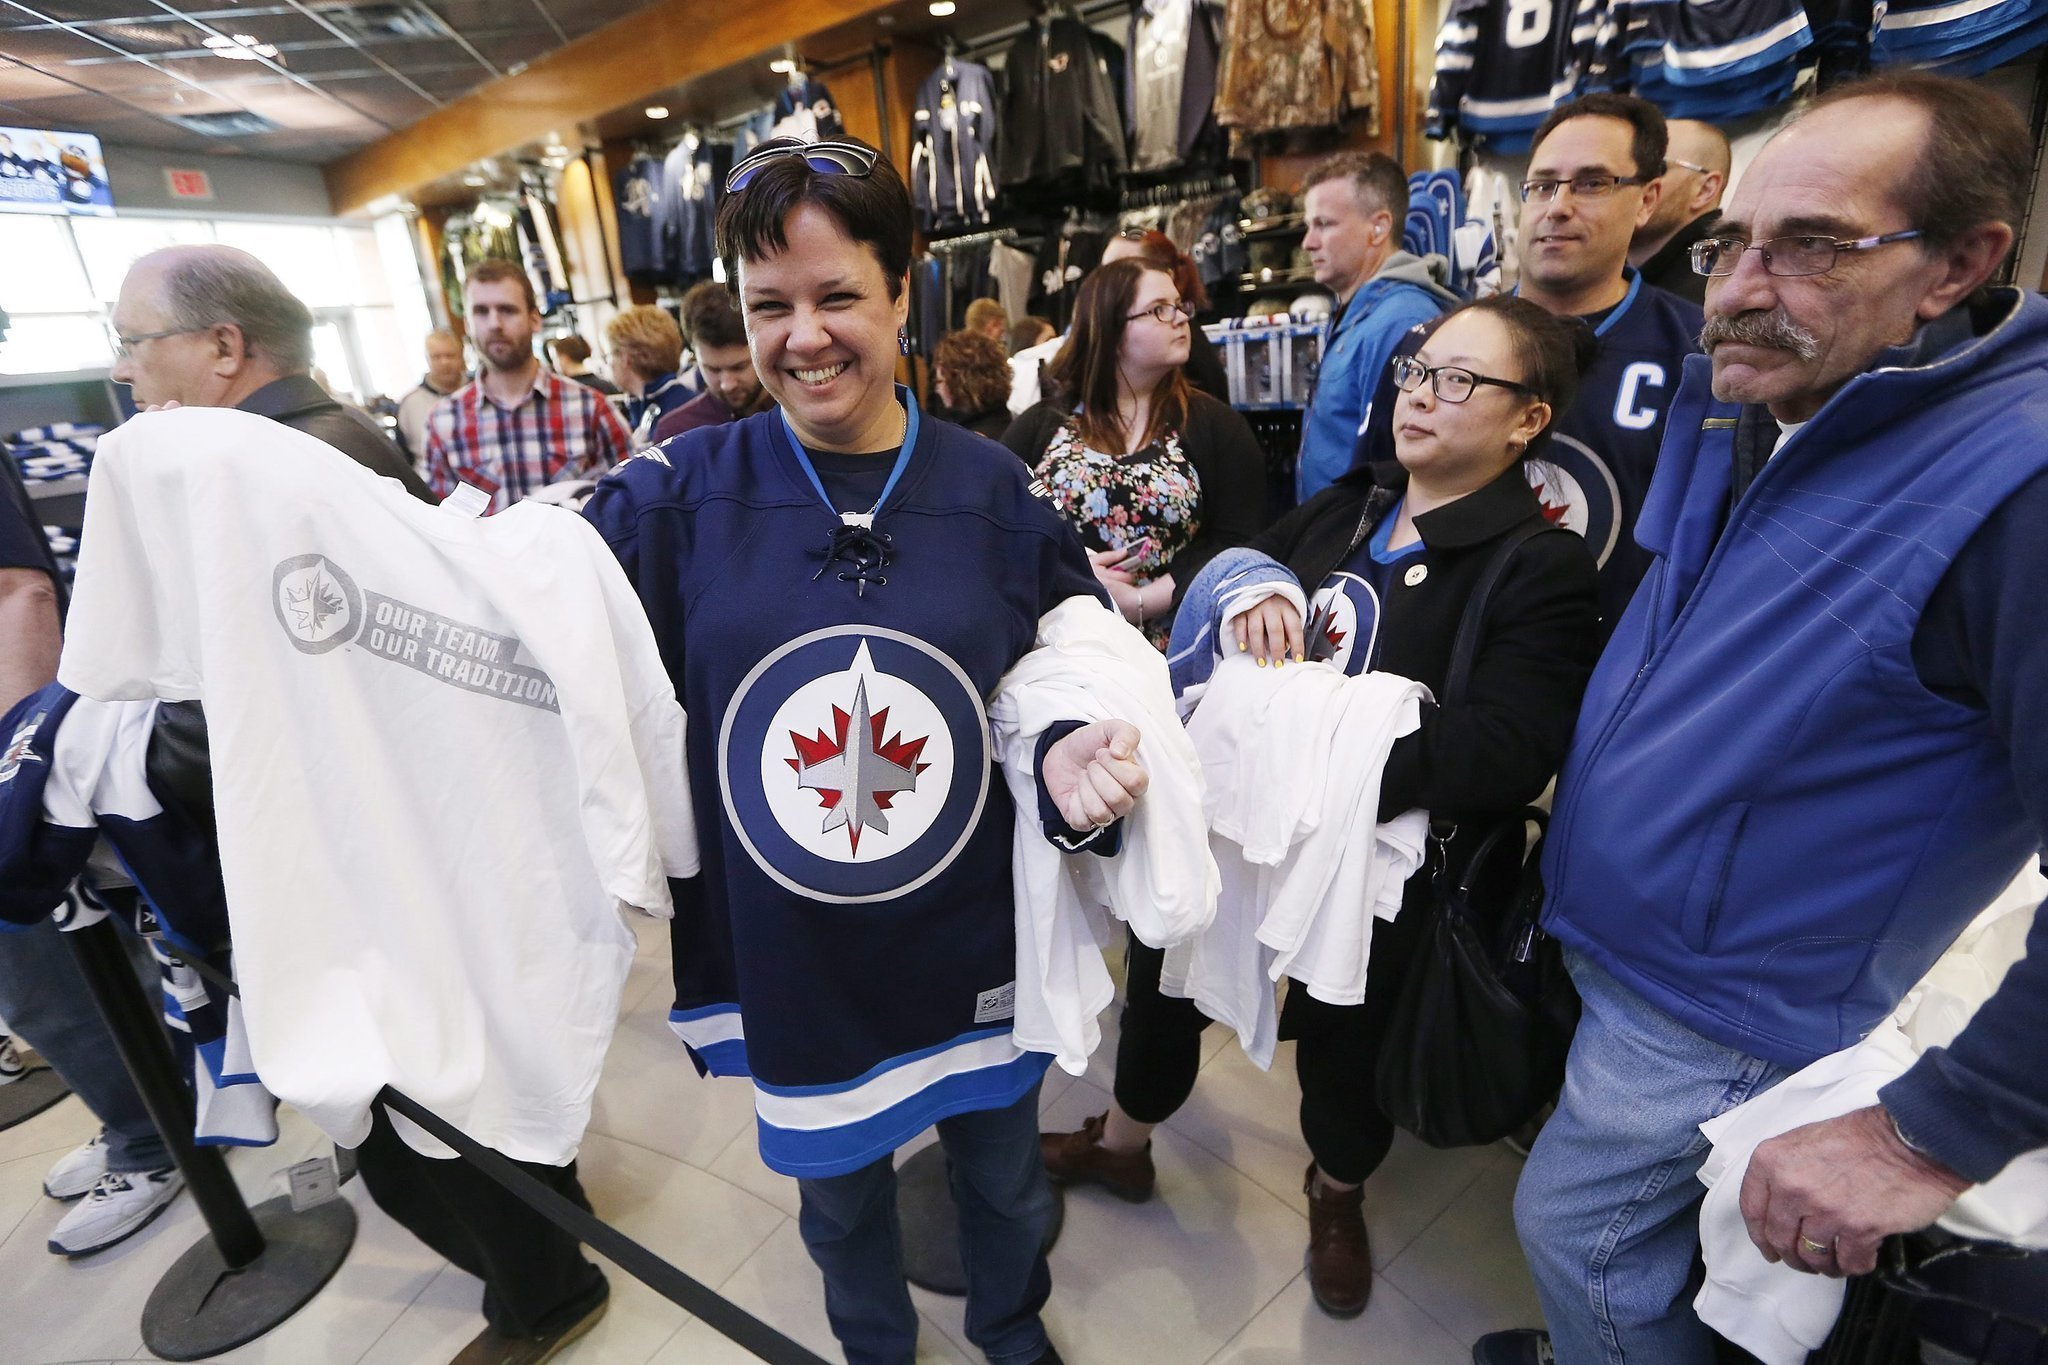 d9258a2ffd2 Whiteout in Winnipeg for NHL playoffs - The San Diego Union-Tribune